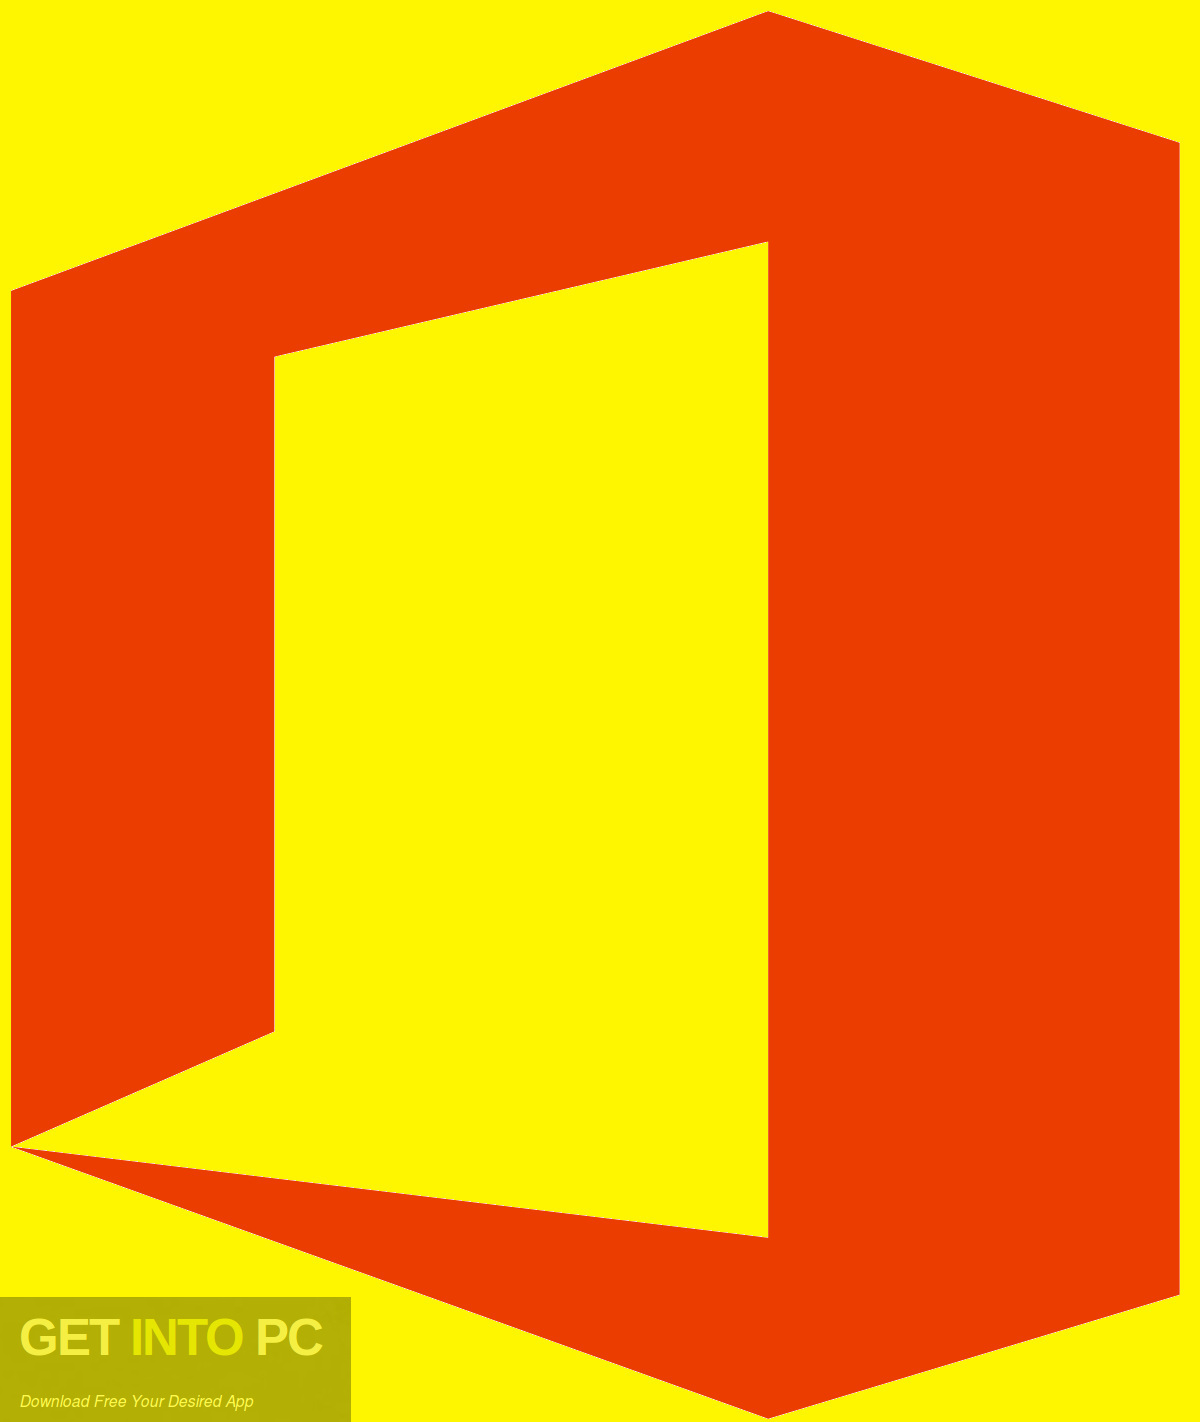 Office 2016 Professional Plus Updated Aug 2019 Free Download